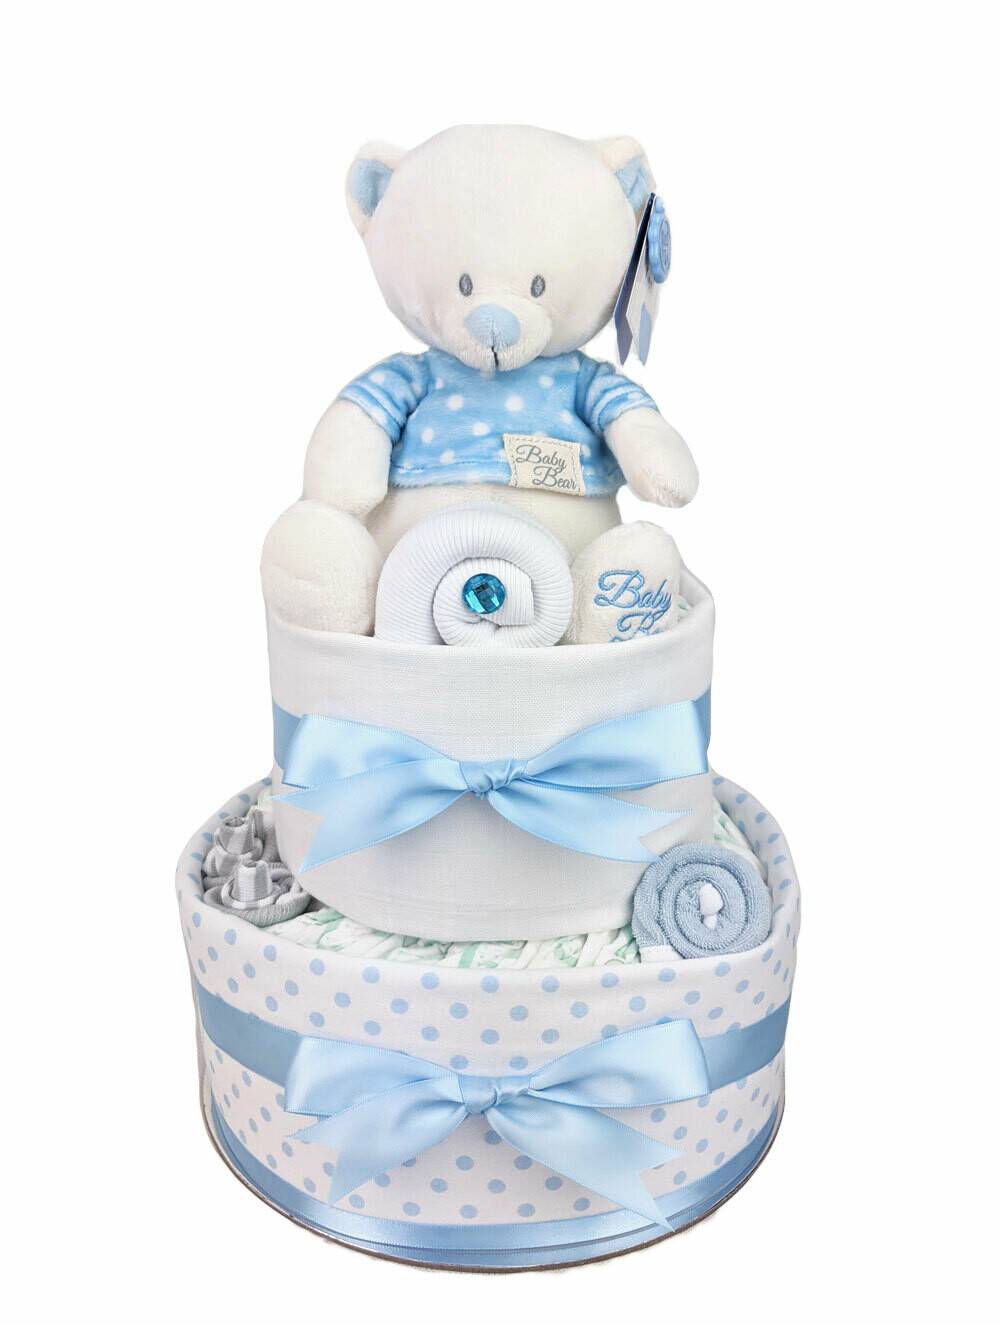 Two Tier Spotty Blue Teddy Nappy Cake